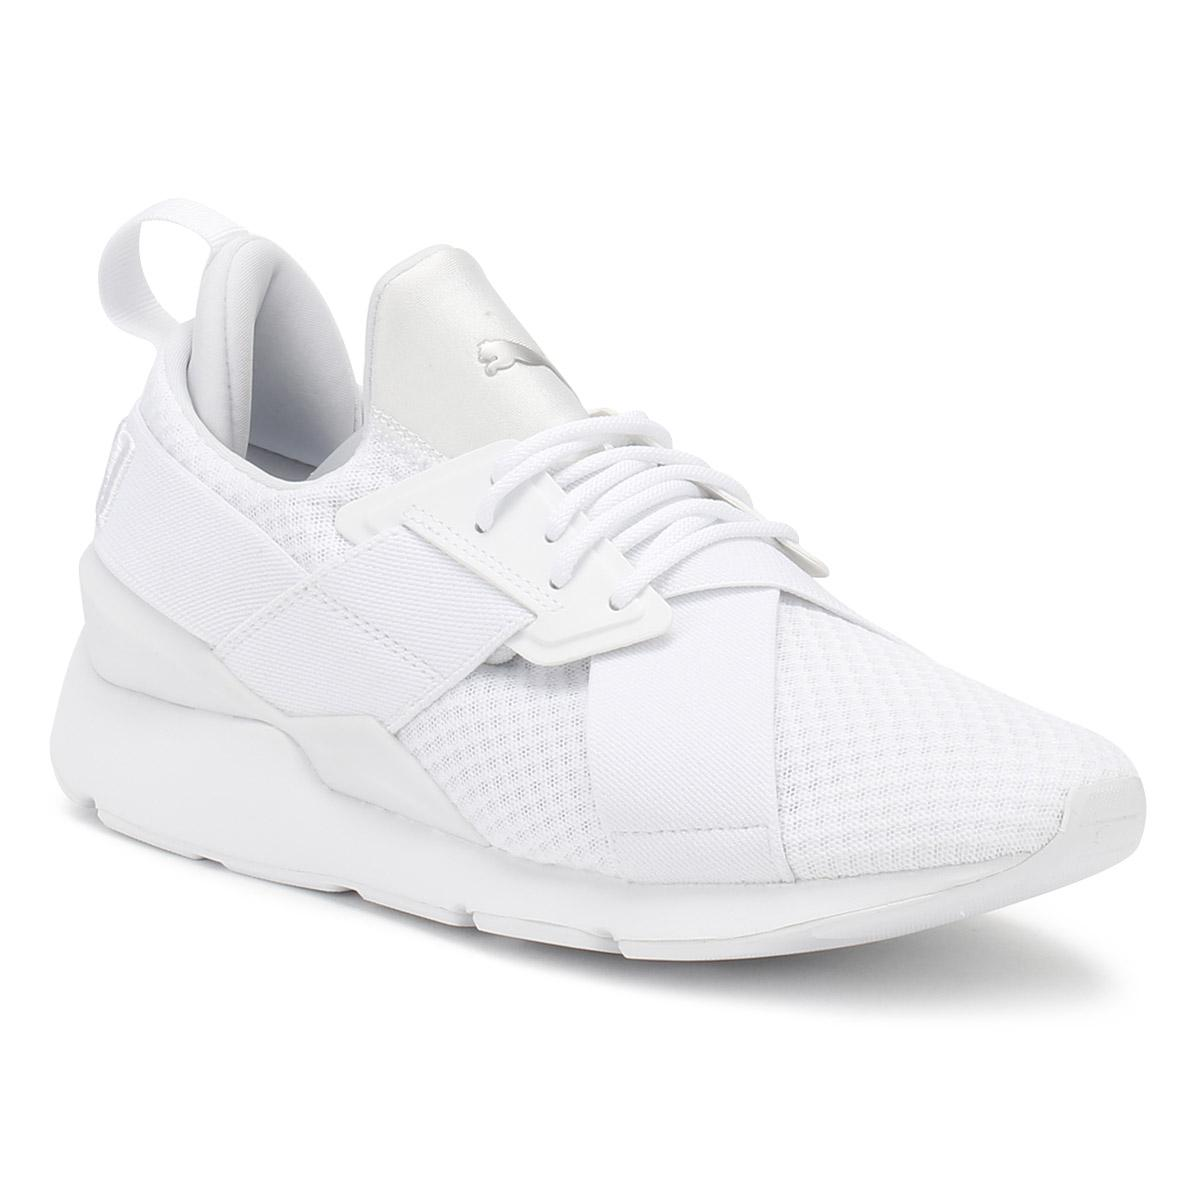 3d17060e7992 PUMA Womens White Muse X-strap Ep Trainers in White - Lyst